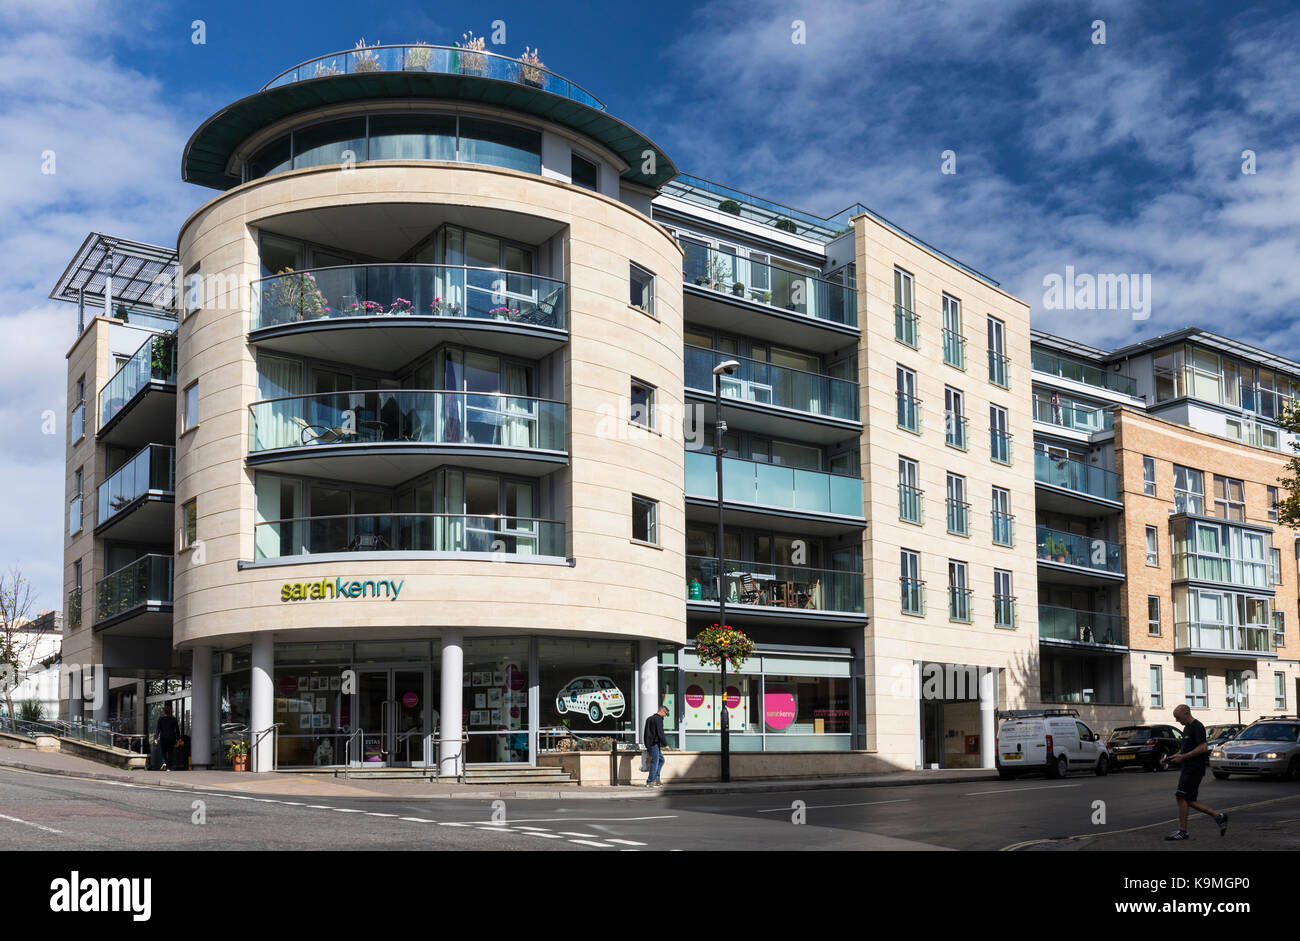 Sarah Kenny Residential Lettings and apartments, Clifton, Bristol, England - Stock Image